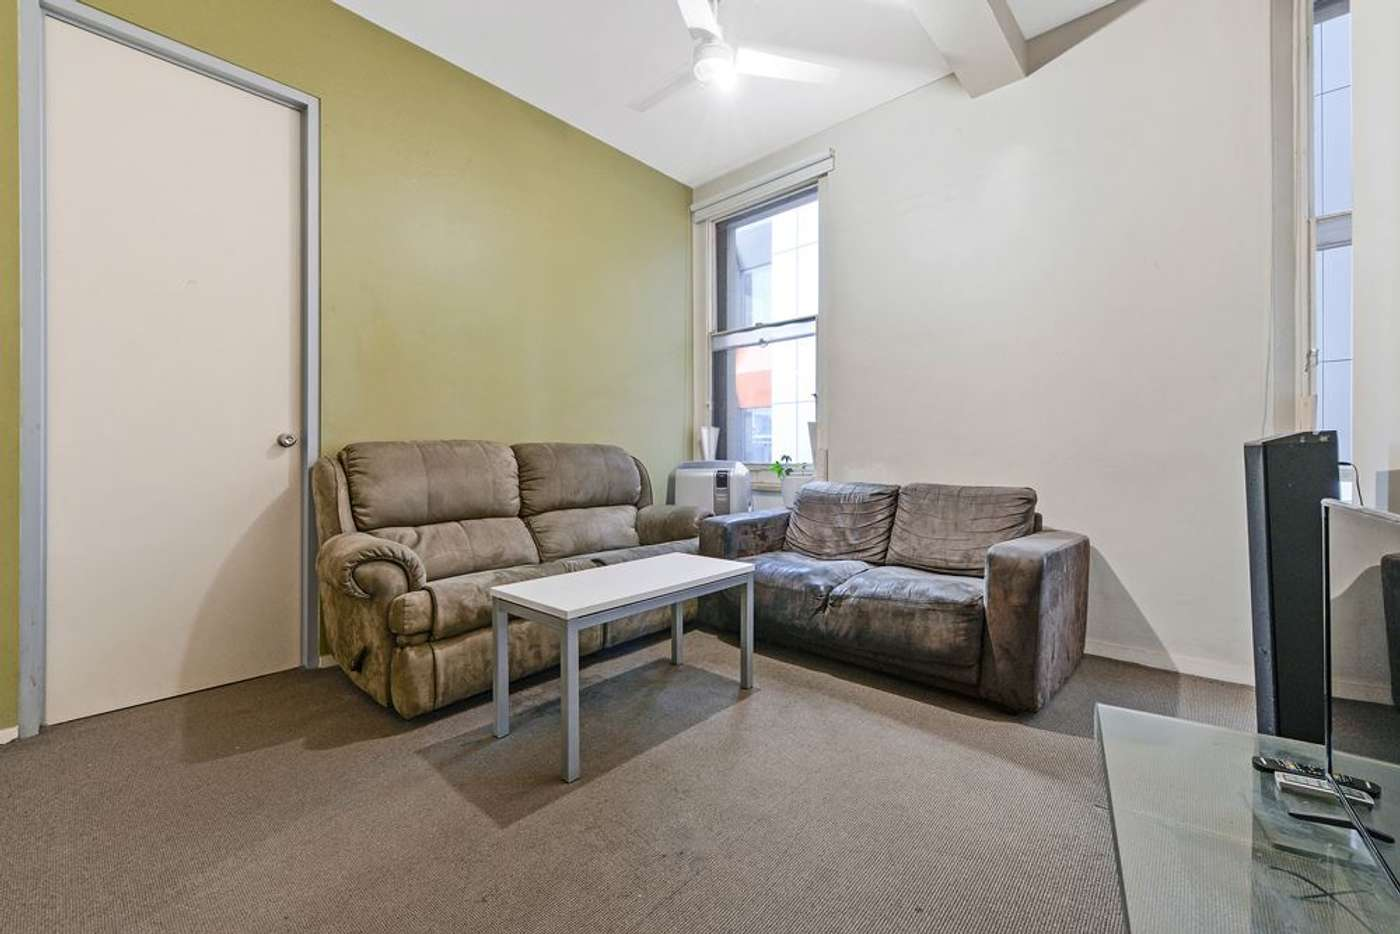 Main view of Homely apartment listing, 705/23 King William Street, Adelaide SA 5000